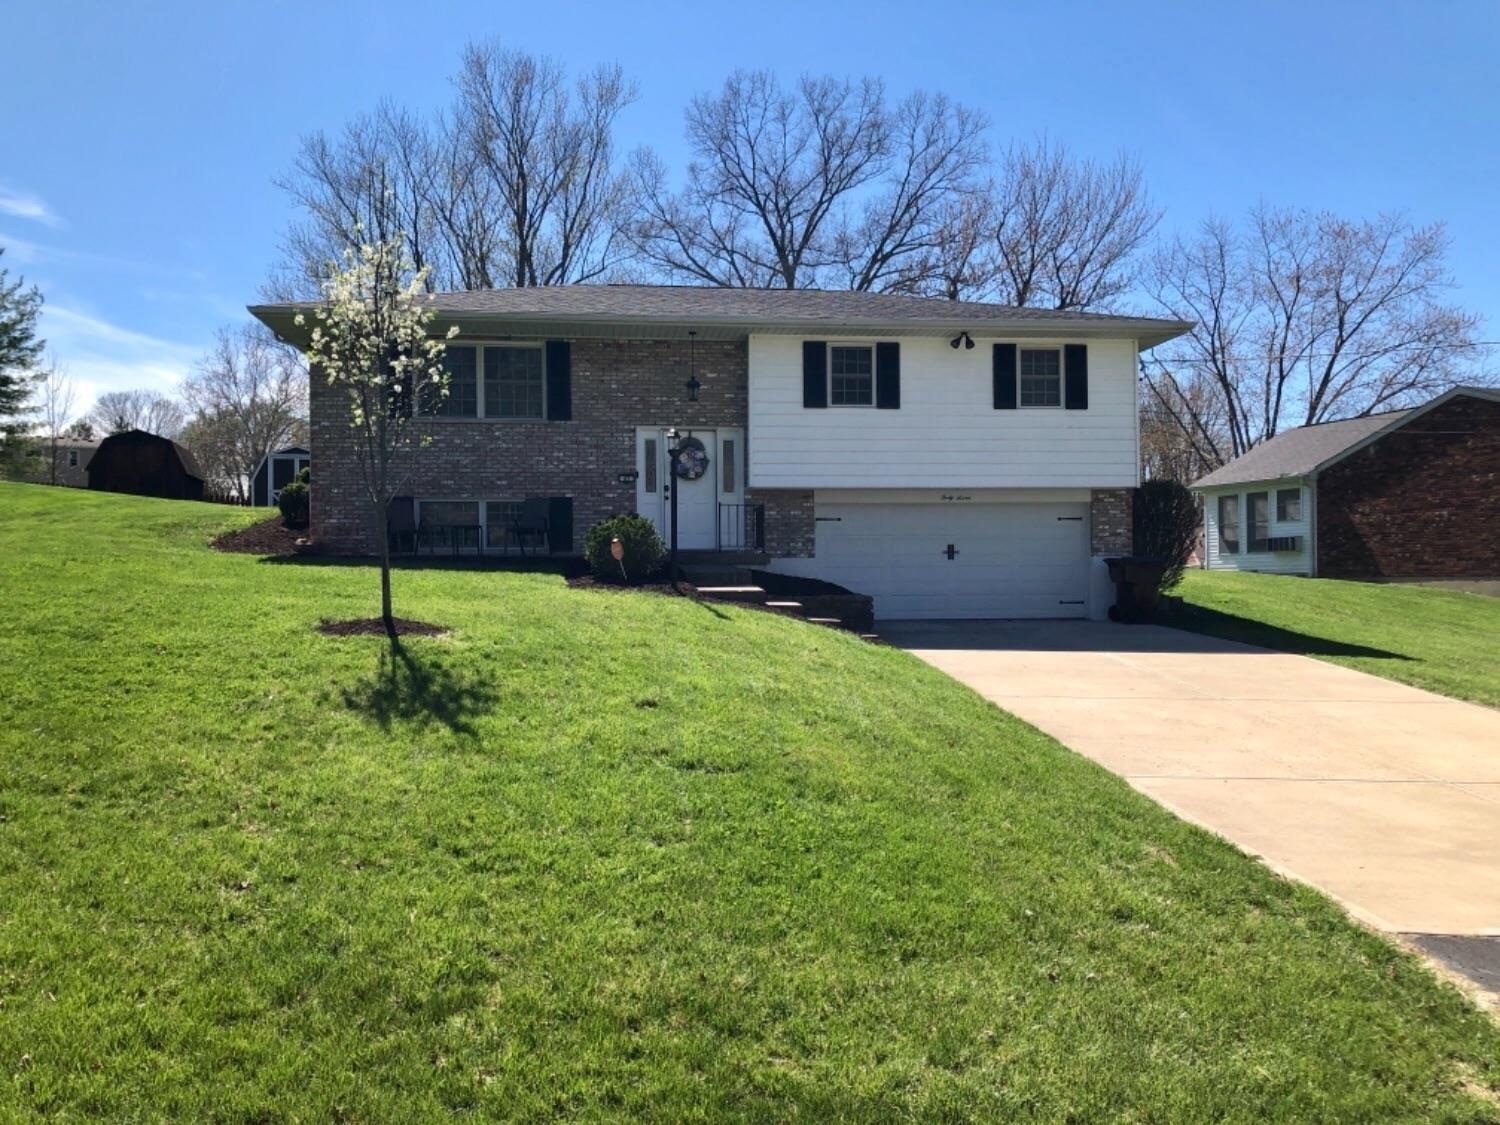 Photo 1 for 47 Jackson Dell Ct Cleves, OH 45002